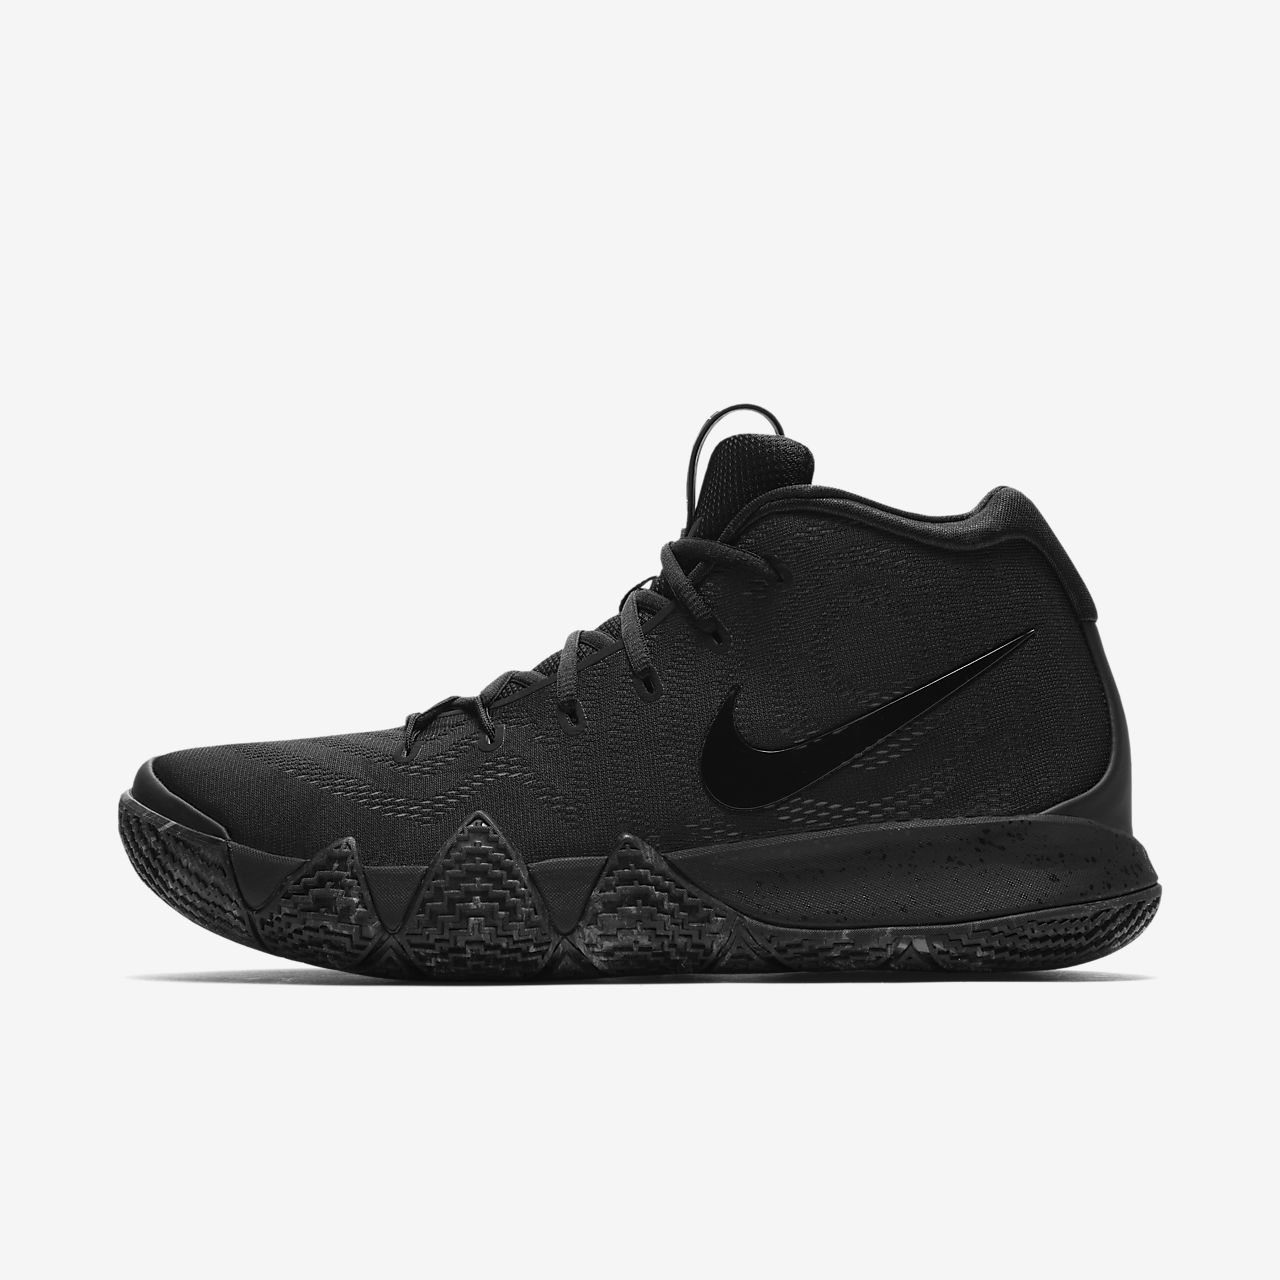 buy popular 74e59 59b93 Basketball Shoe. Kyrie 4